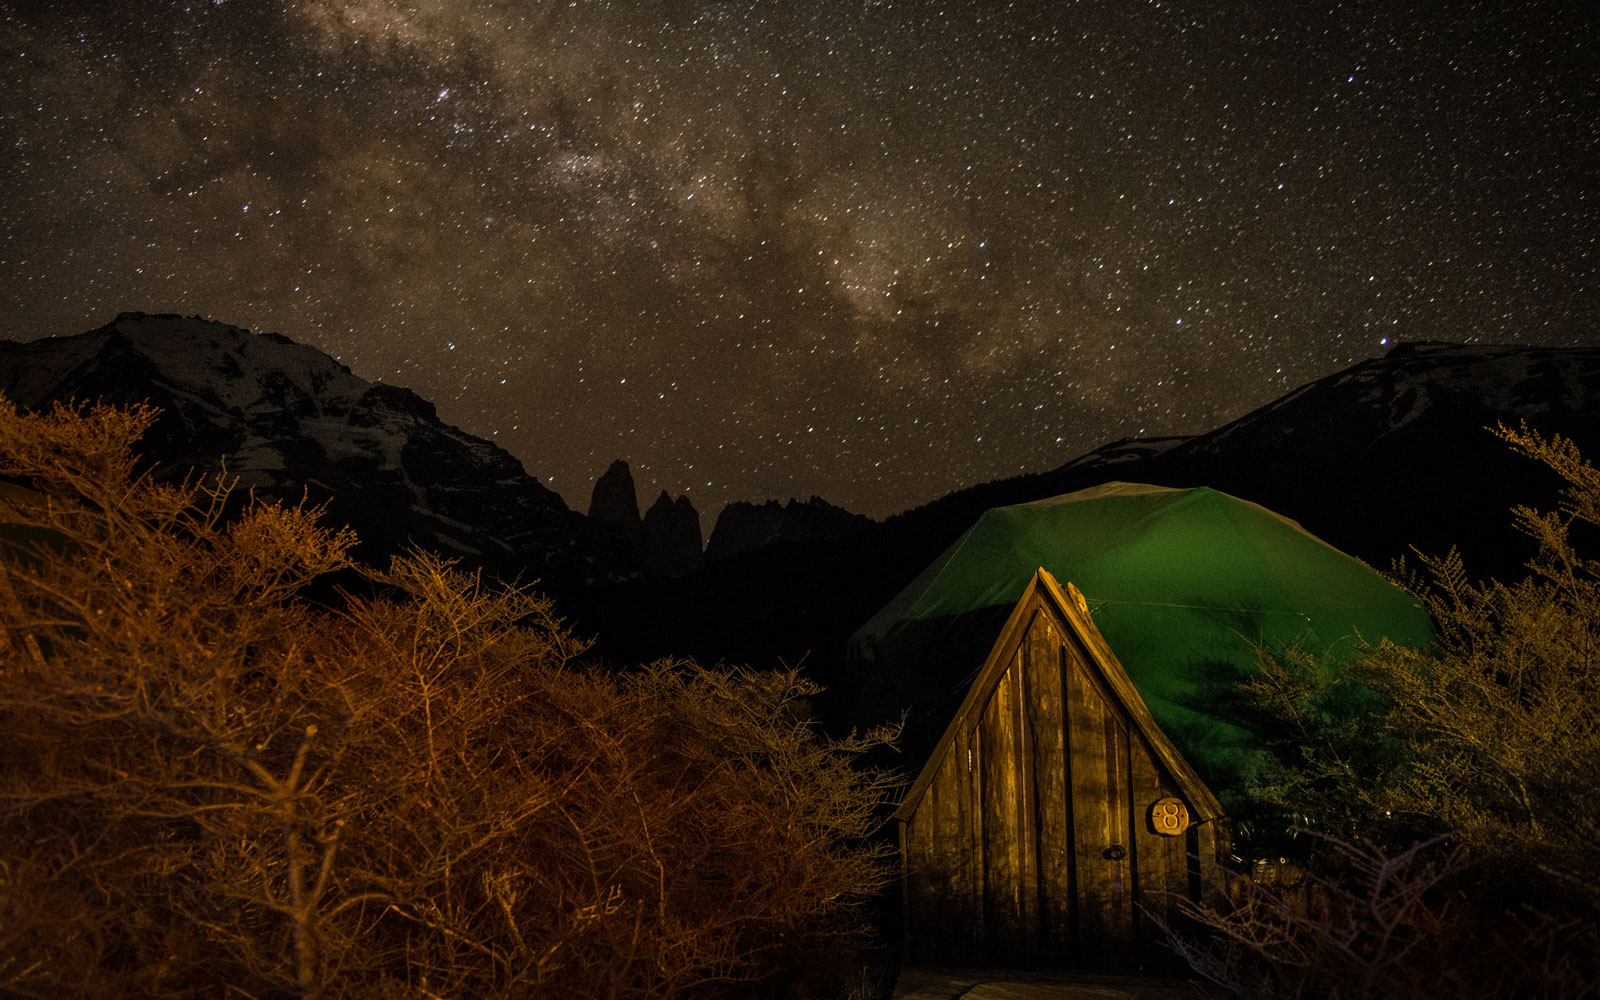 ecocamp patagonia starry night